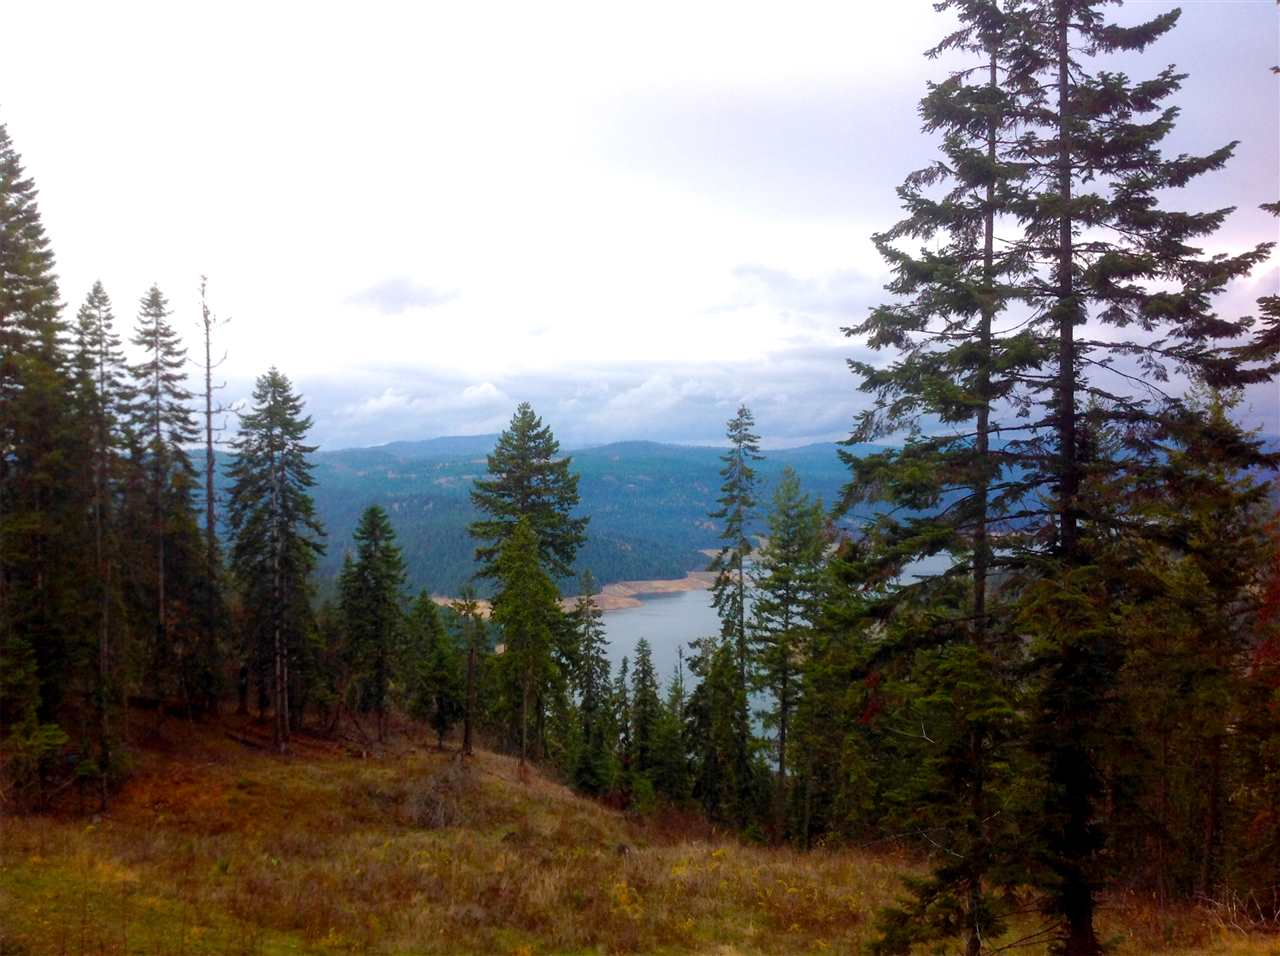 Recreational Property for Sale at Parcel 2 Tie Creek Road Parcel 2 Tie Creek Road Orofino, Idaho 83544